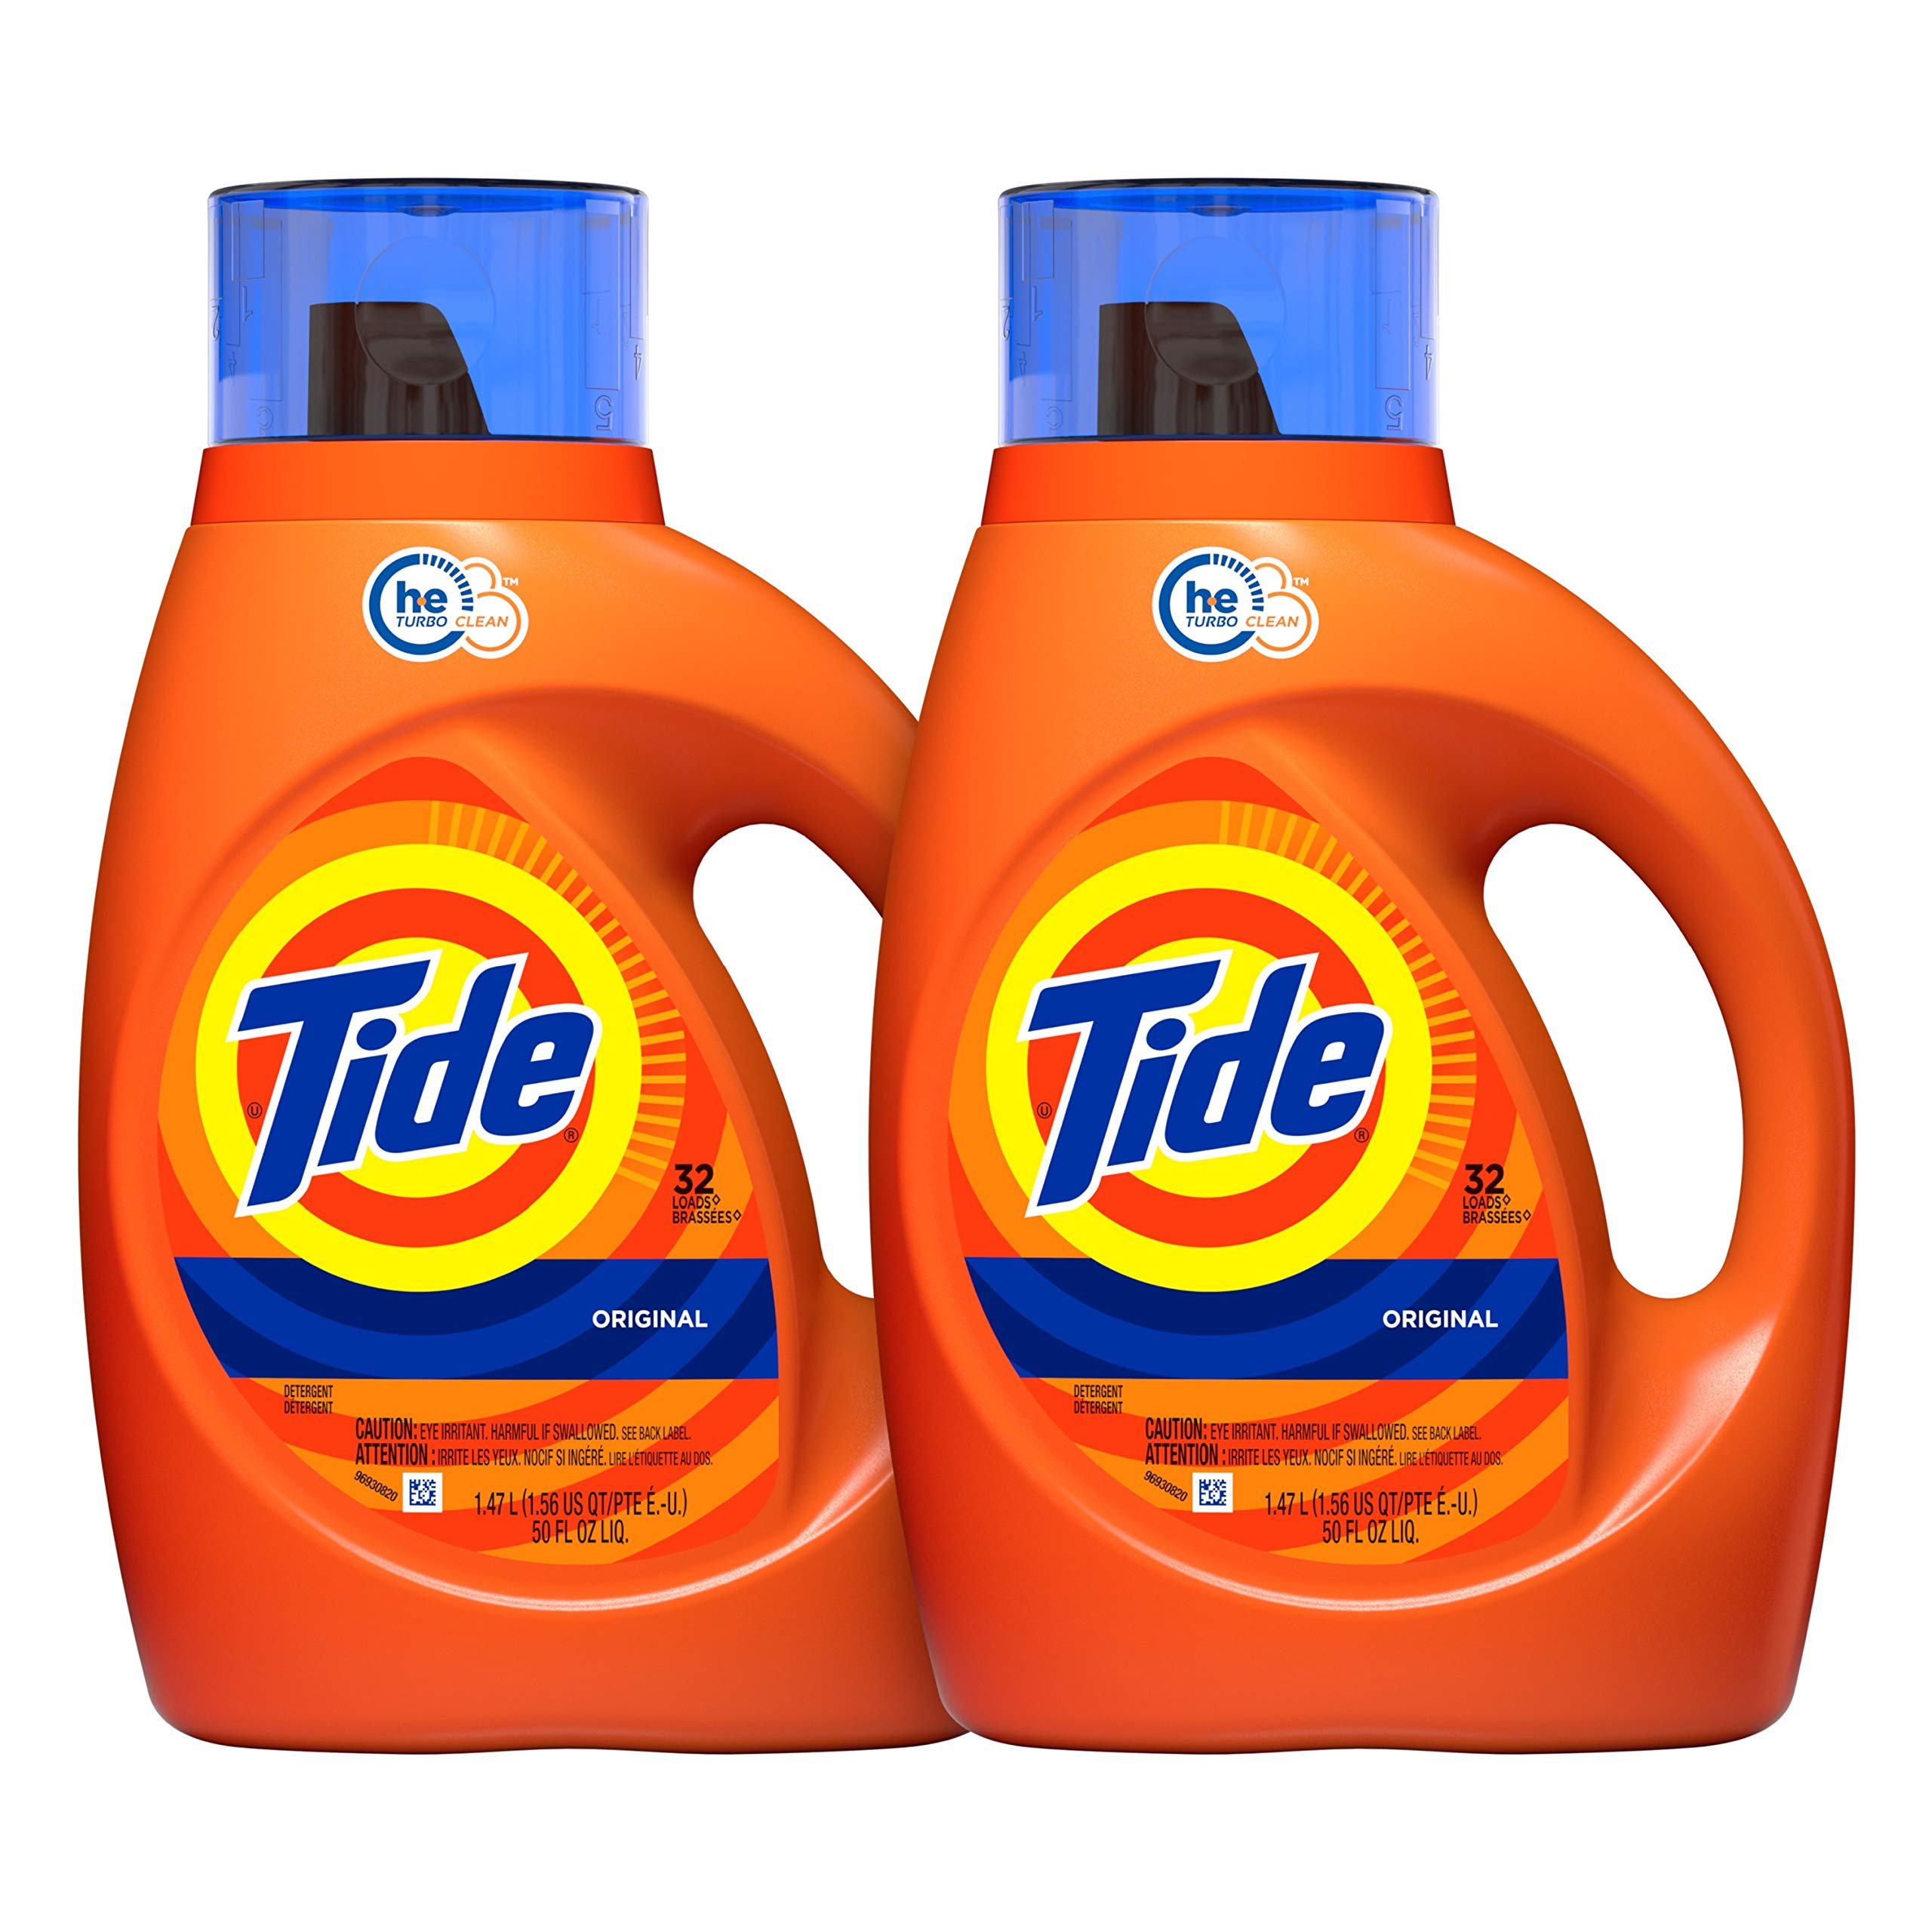 Tide Laundry Detergent Liquid, Original Scent, HE Turbo Clean, 50 oz, Pack of 2, 64 Loads Total (Packaging May Vary) by Tide